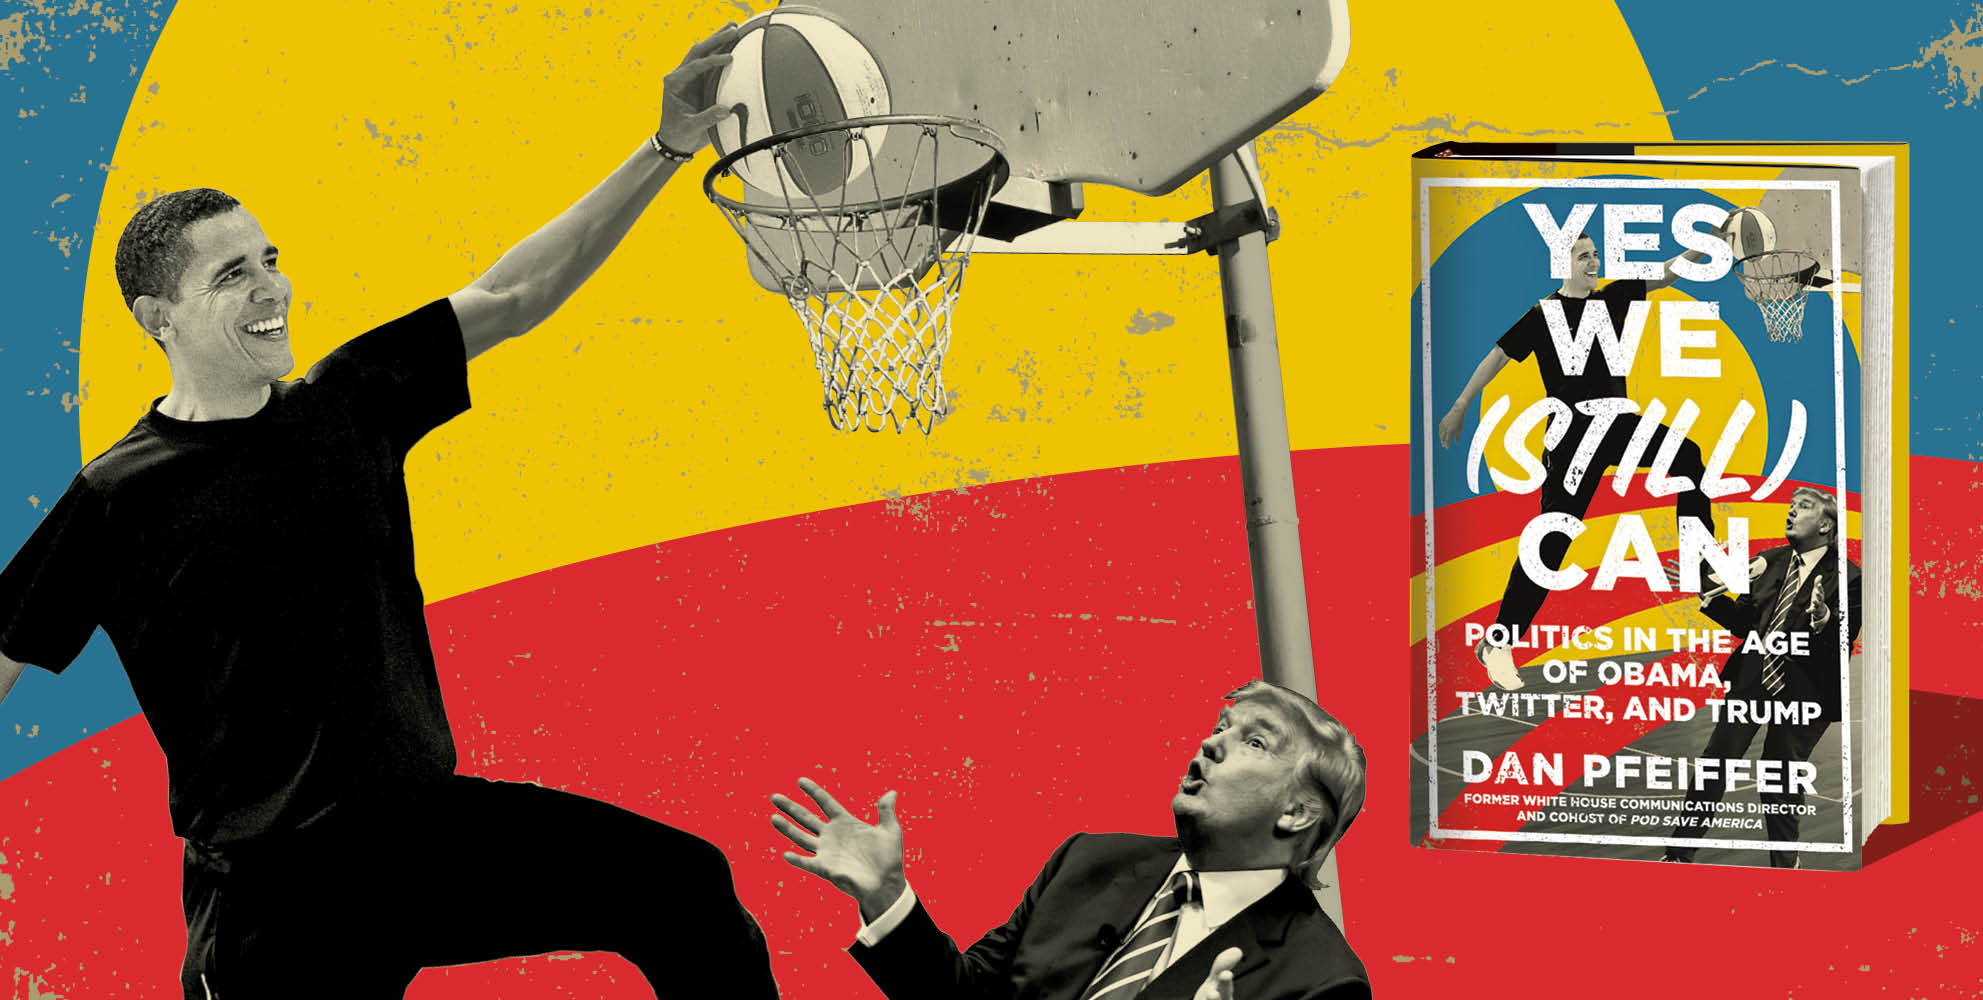 """The cover image of Dan Pfeiffer's book """"Yes We (Still) Can"""" depicts former President Barack Obama dunking a basketball over current President Donald Trump."""